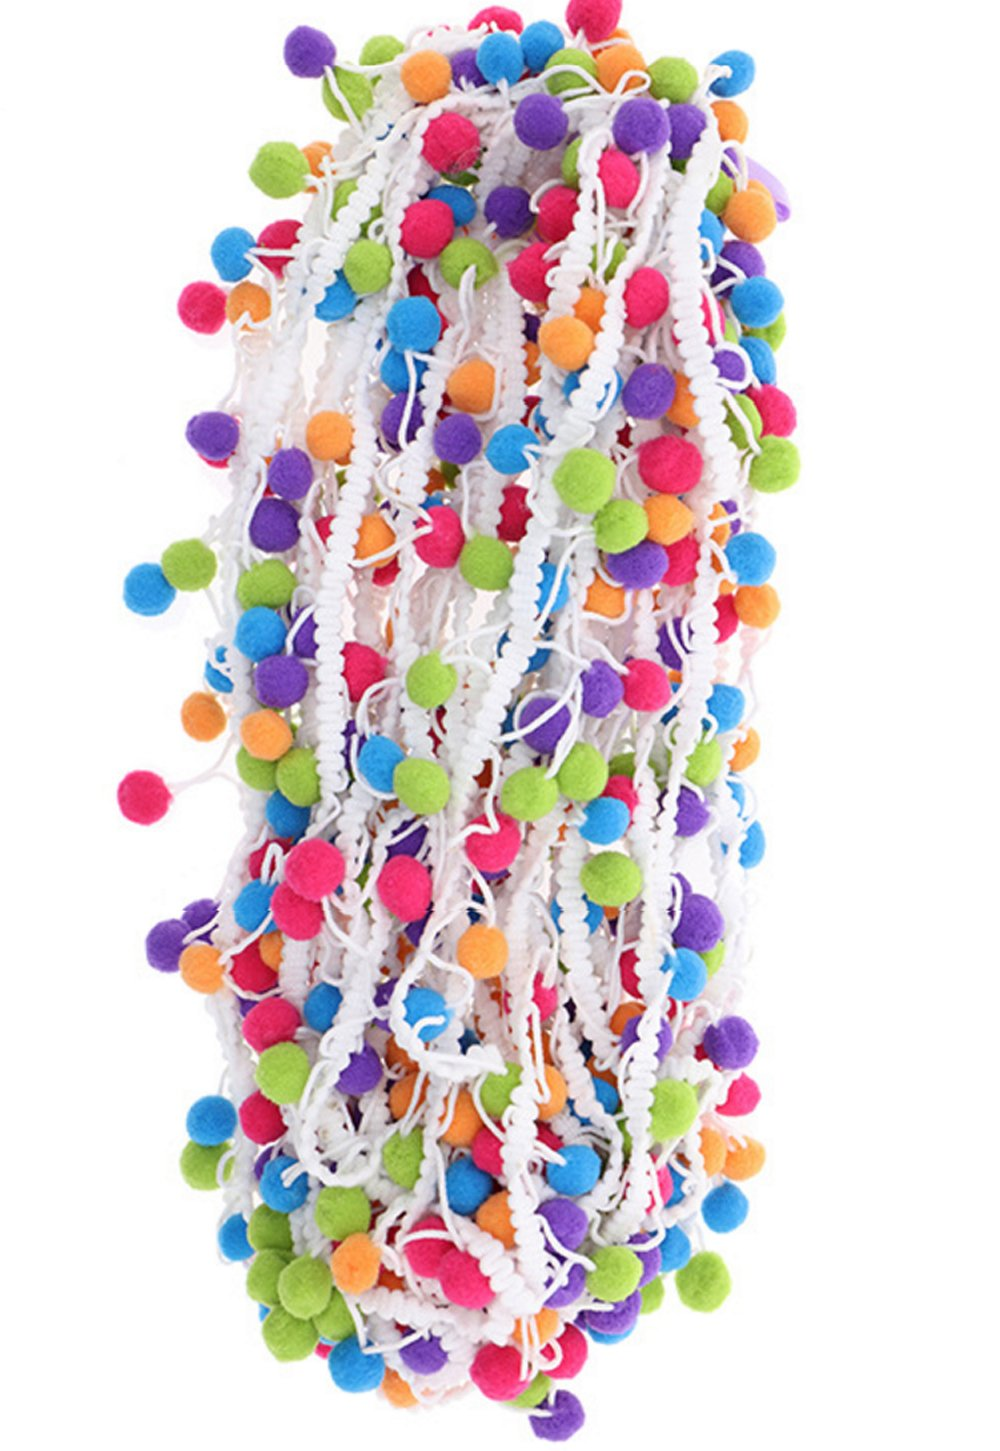 5 Yards YYCRAFT Rainbow Pom Pom Ball Fringe Trim Ribbon Sewing